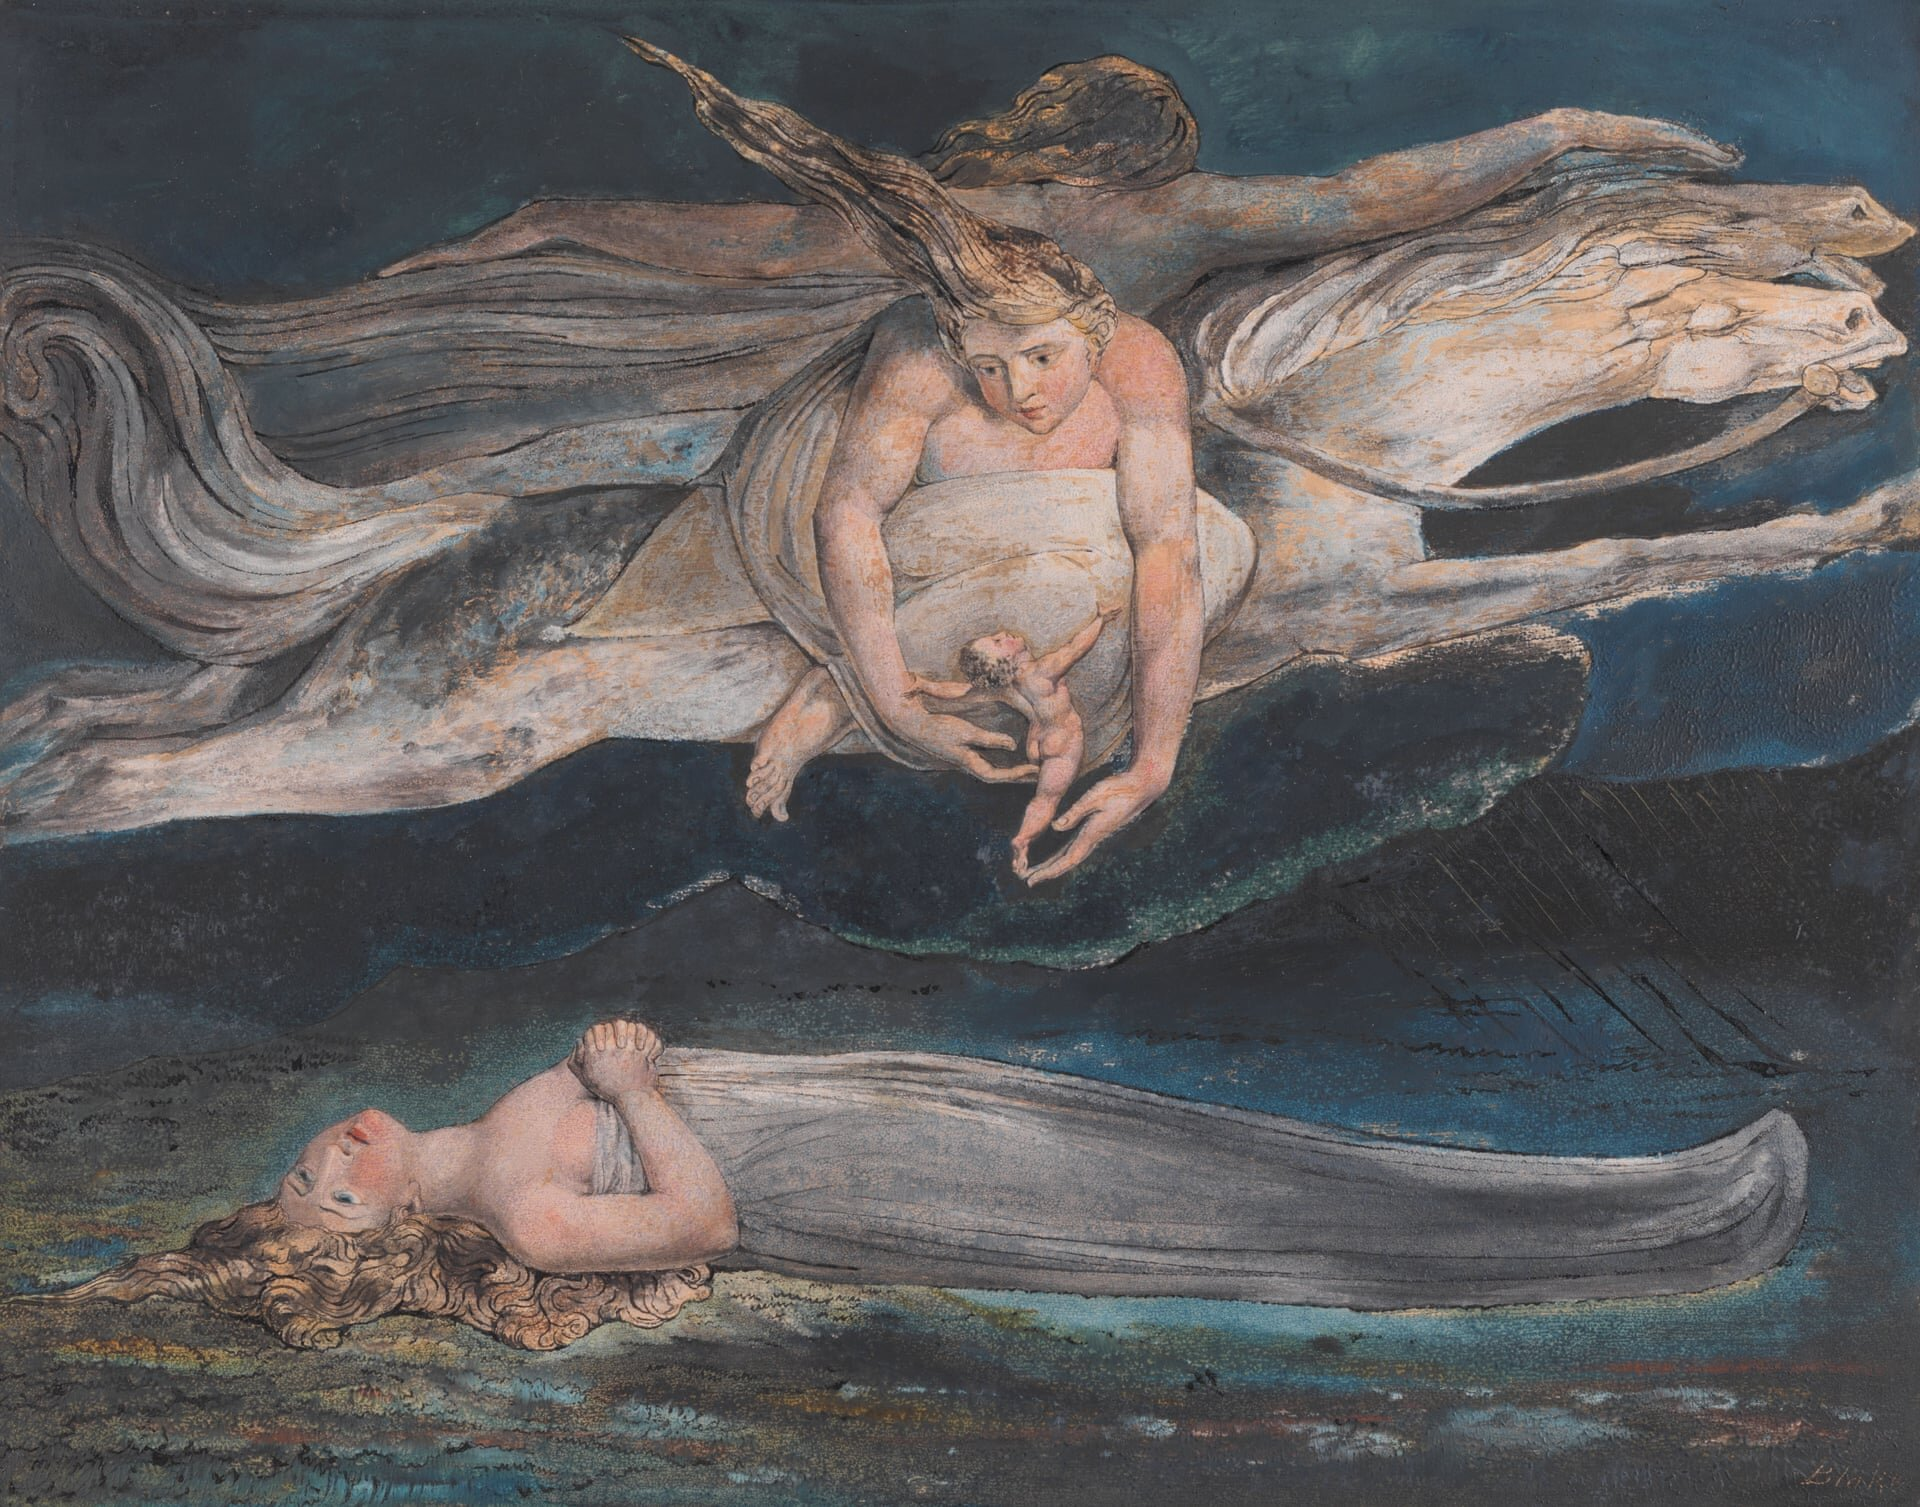 Pity , by William Blake (c. 1795)